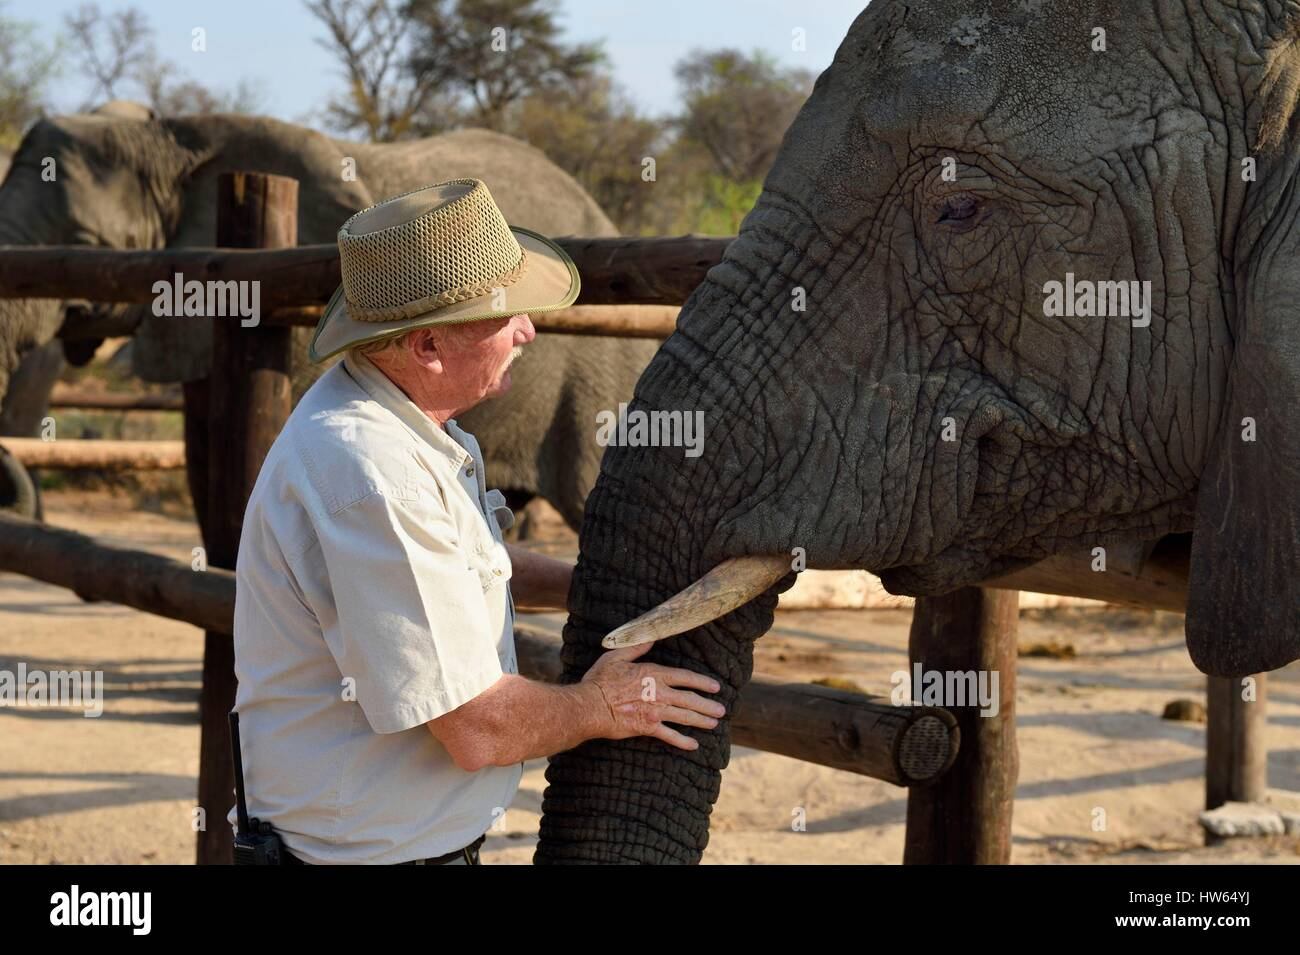 Zimbabwe Midlands Province Gweru Antelope Park home to ALERT (African Lion and Environmental Research Trust) the - Stock Image